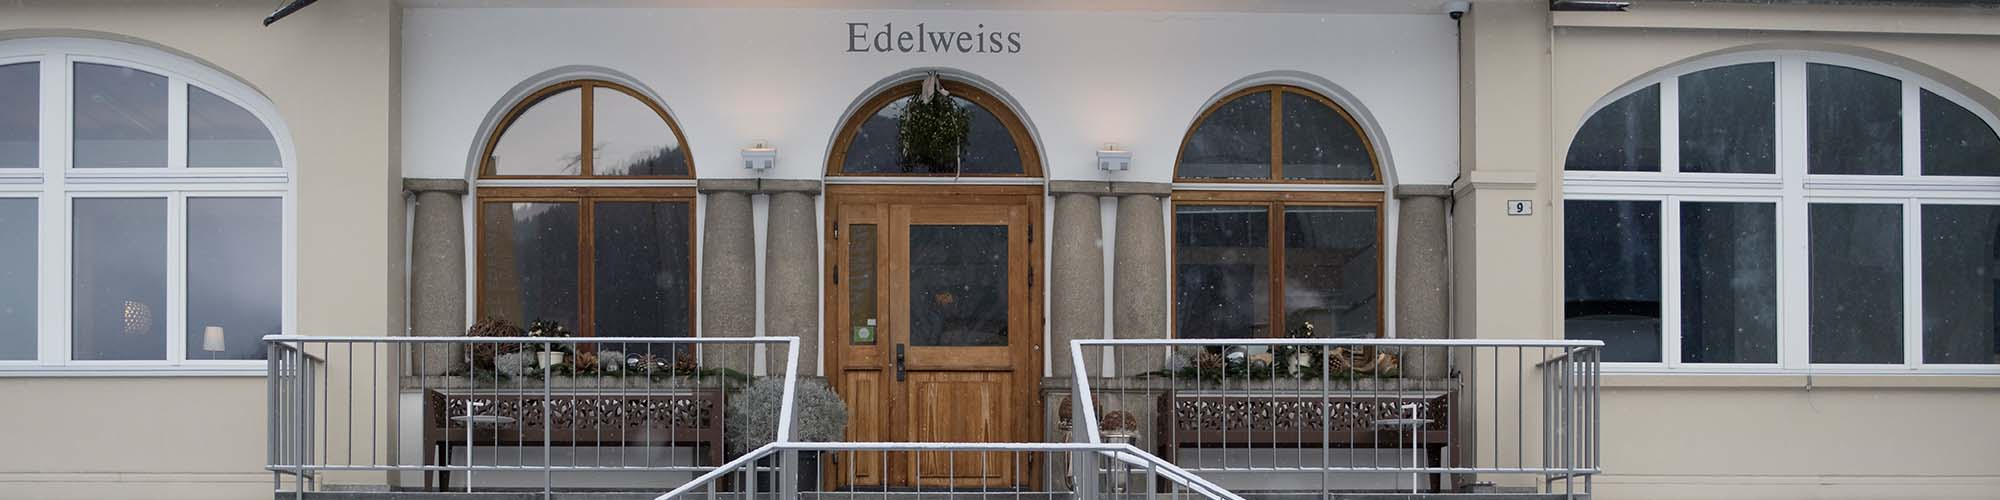 Hotel Davos - Hotel Edelweiss - a Davos